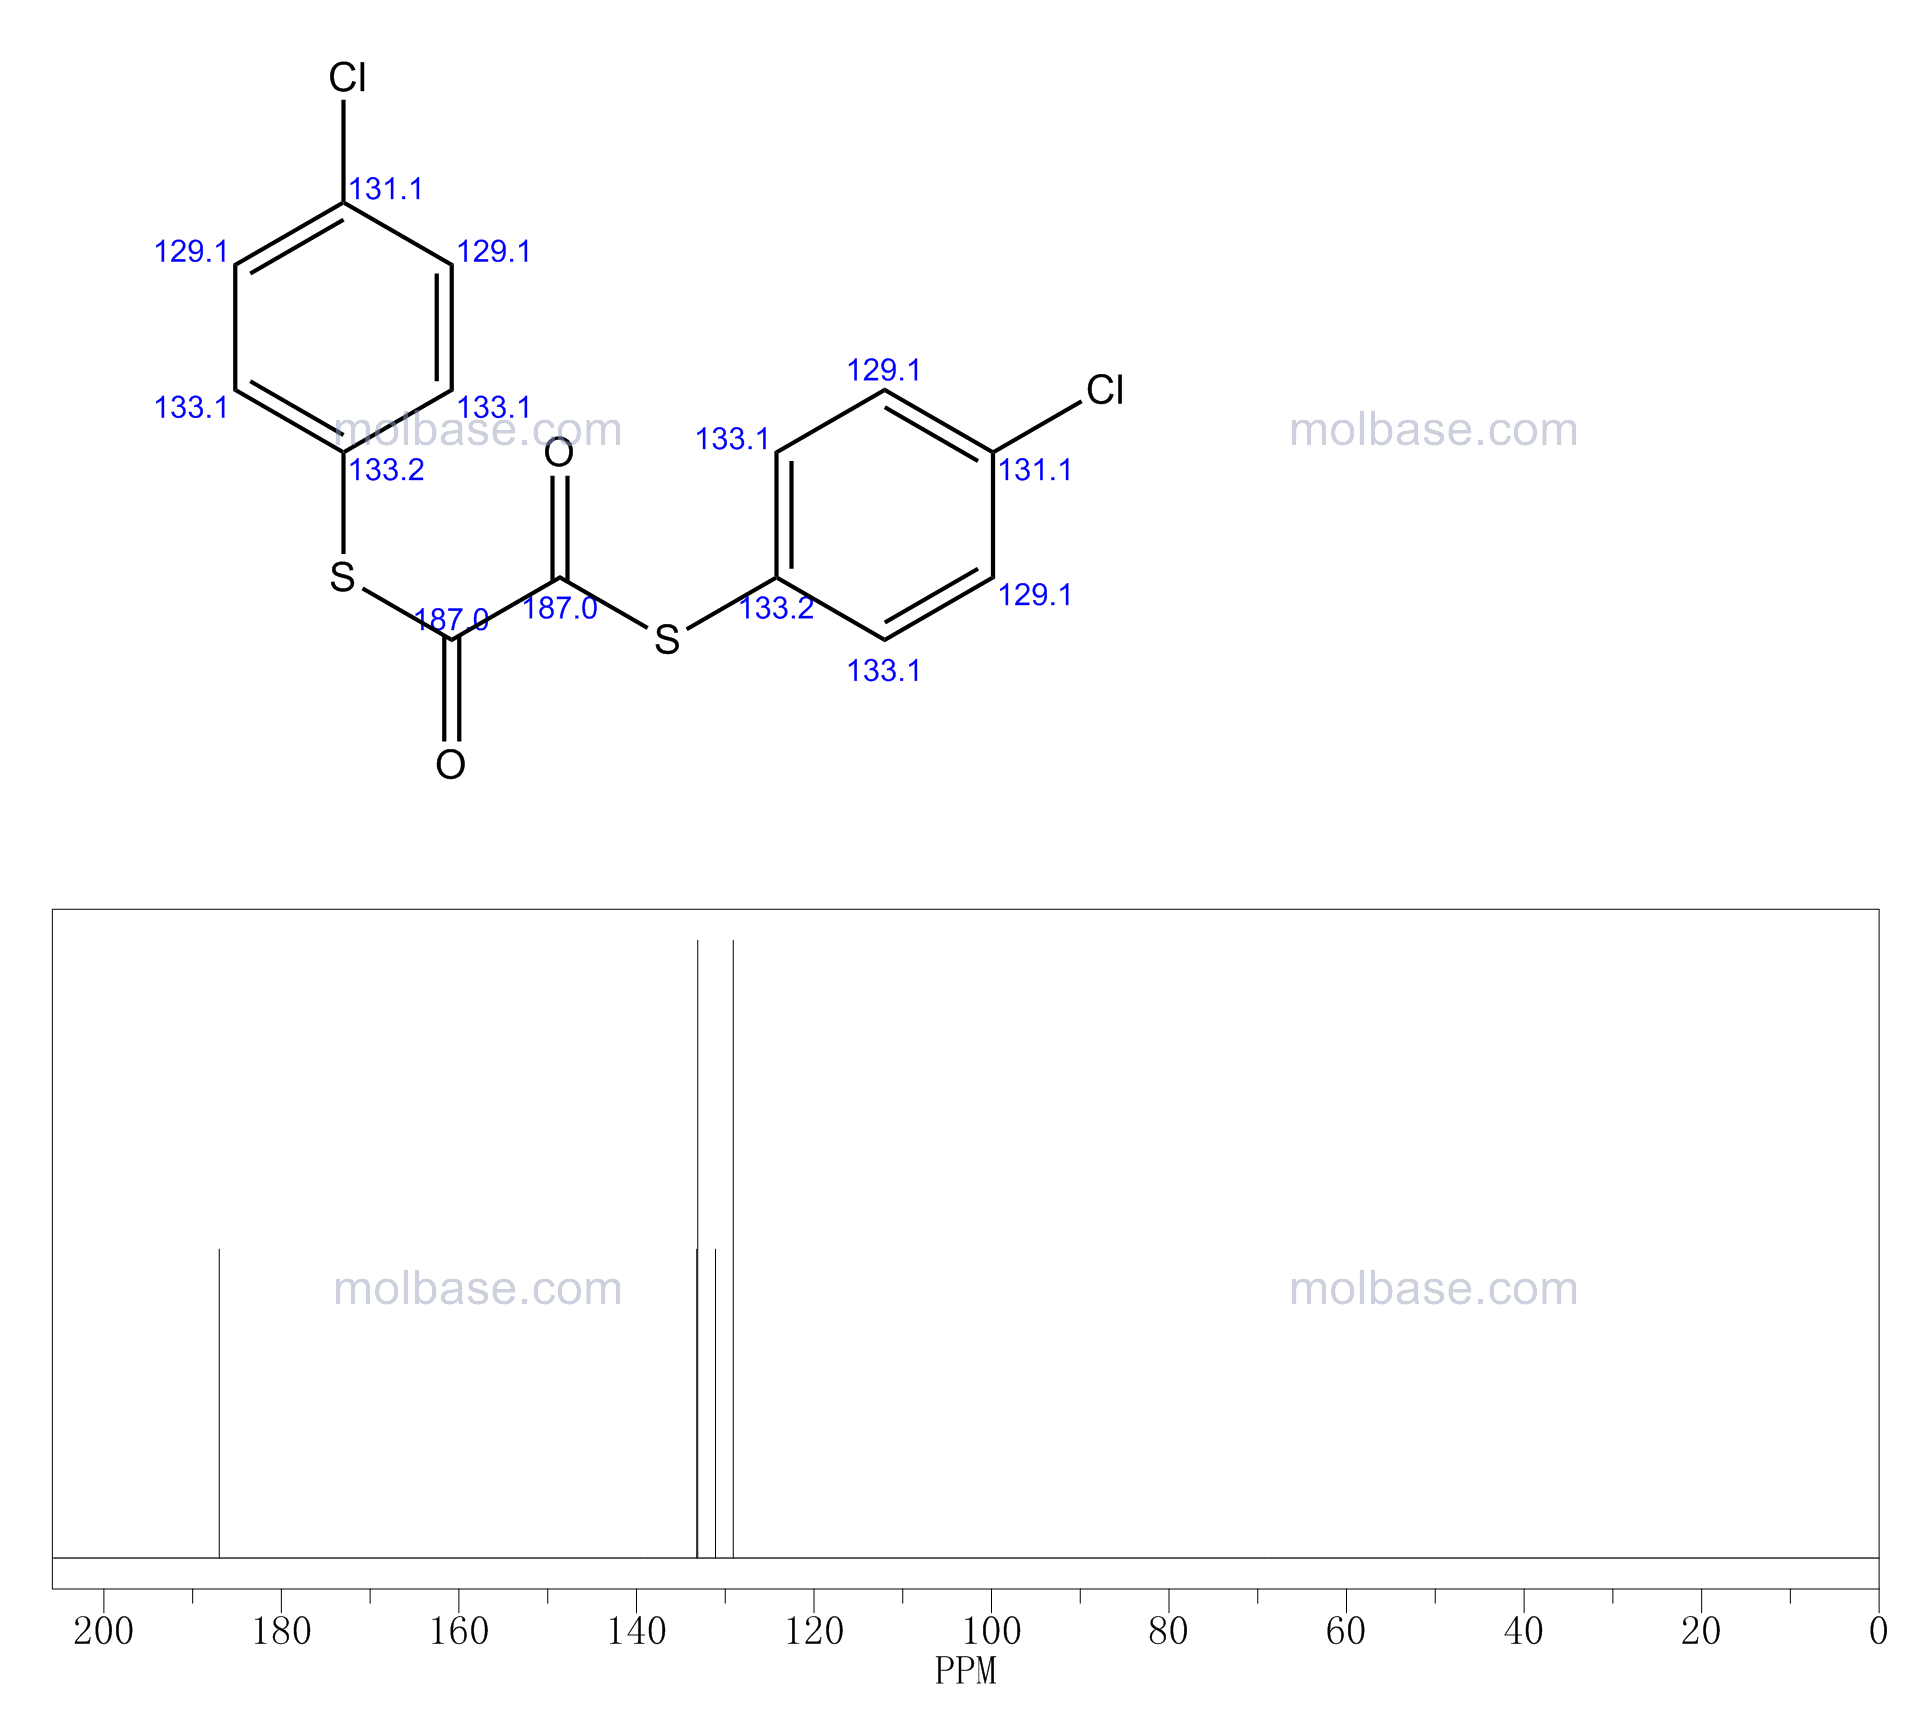 1-S,2-S-bis(4-chlorophenyl) ethanebis(thioate) NMR spectra analysis, Chemical CAS NO. 24455-25-2 NMR spectral analysis, 1-S,2-S-bis(4-chlorophenyl) ethanebis(thioate) C-NMR spectrum